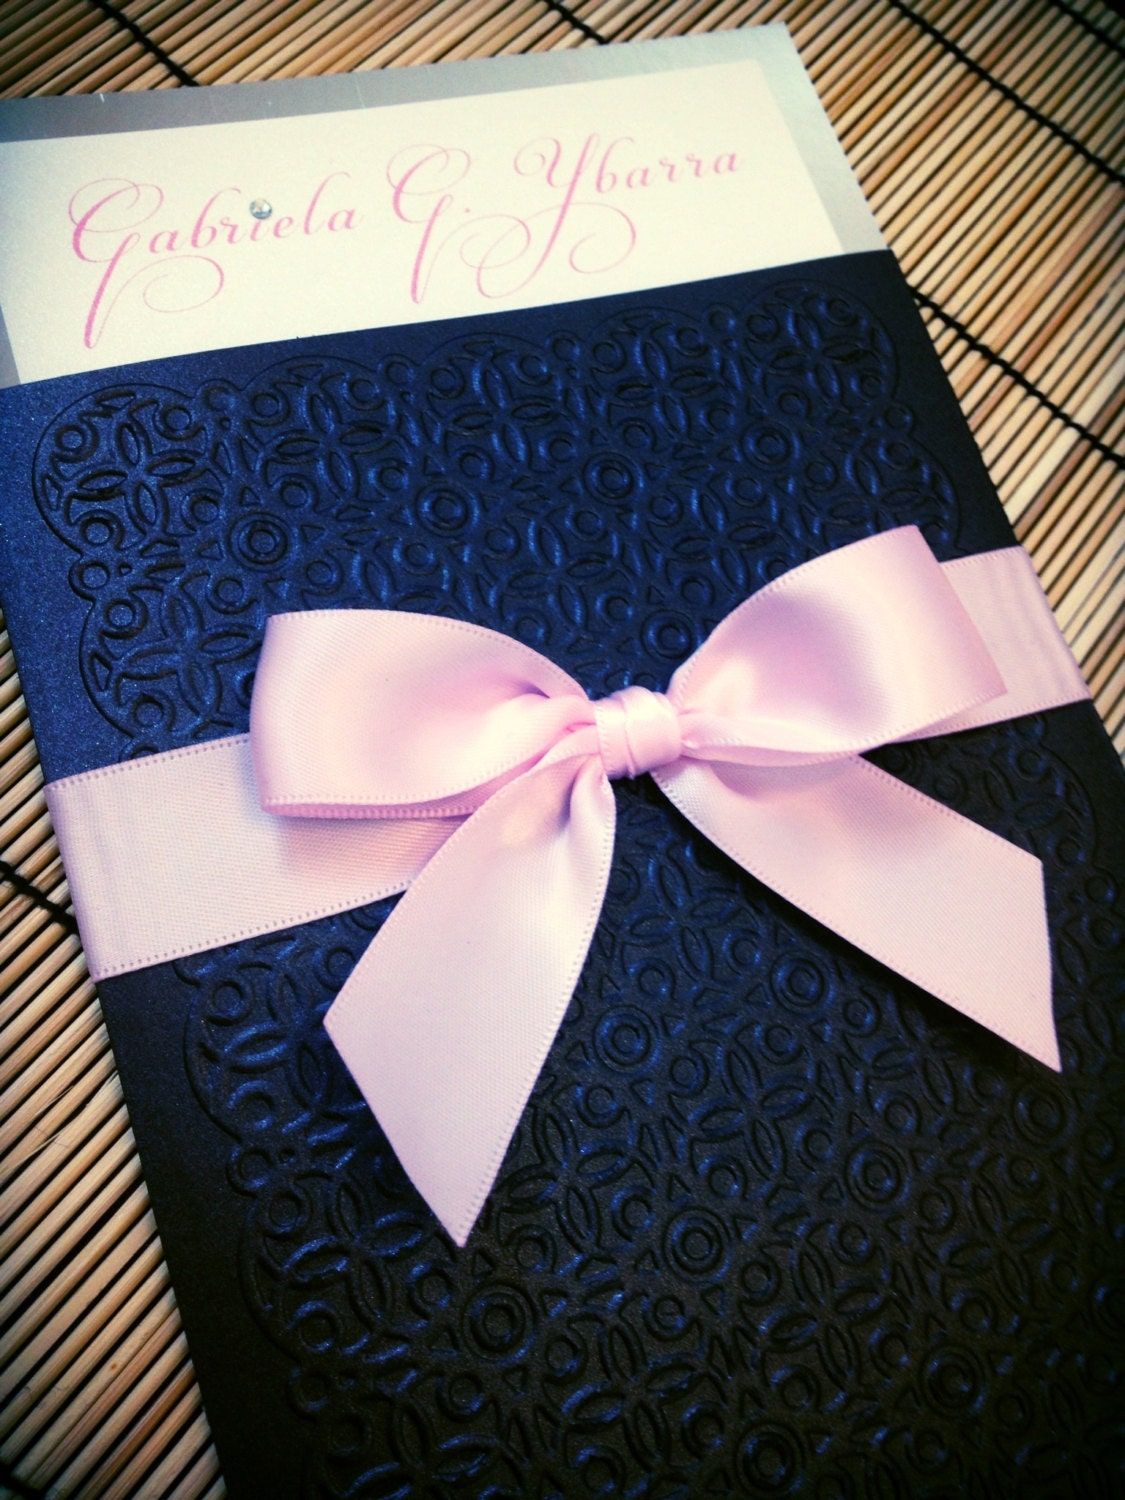 Elegant Quinceanera Invitations was very inspiring ideas you may choose for invitation ideas